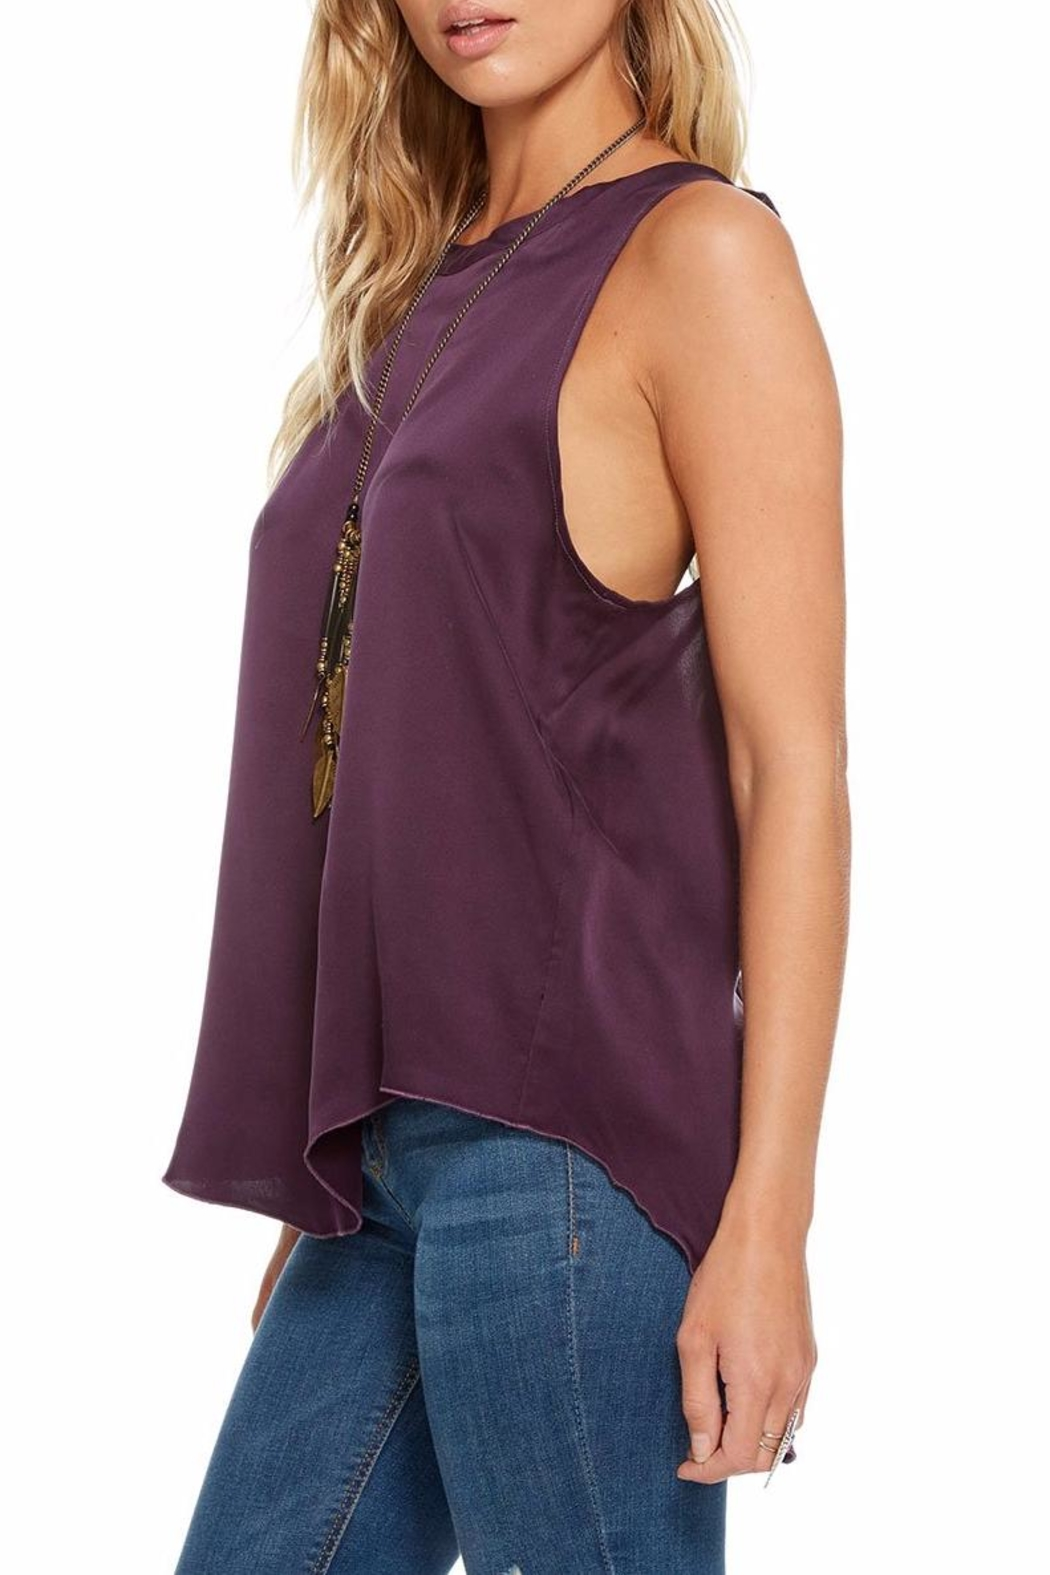 Chaser Silk Charmeuse T-Back - Front Full Image